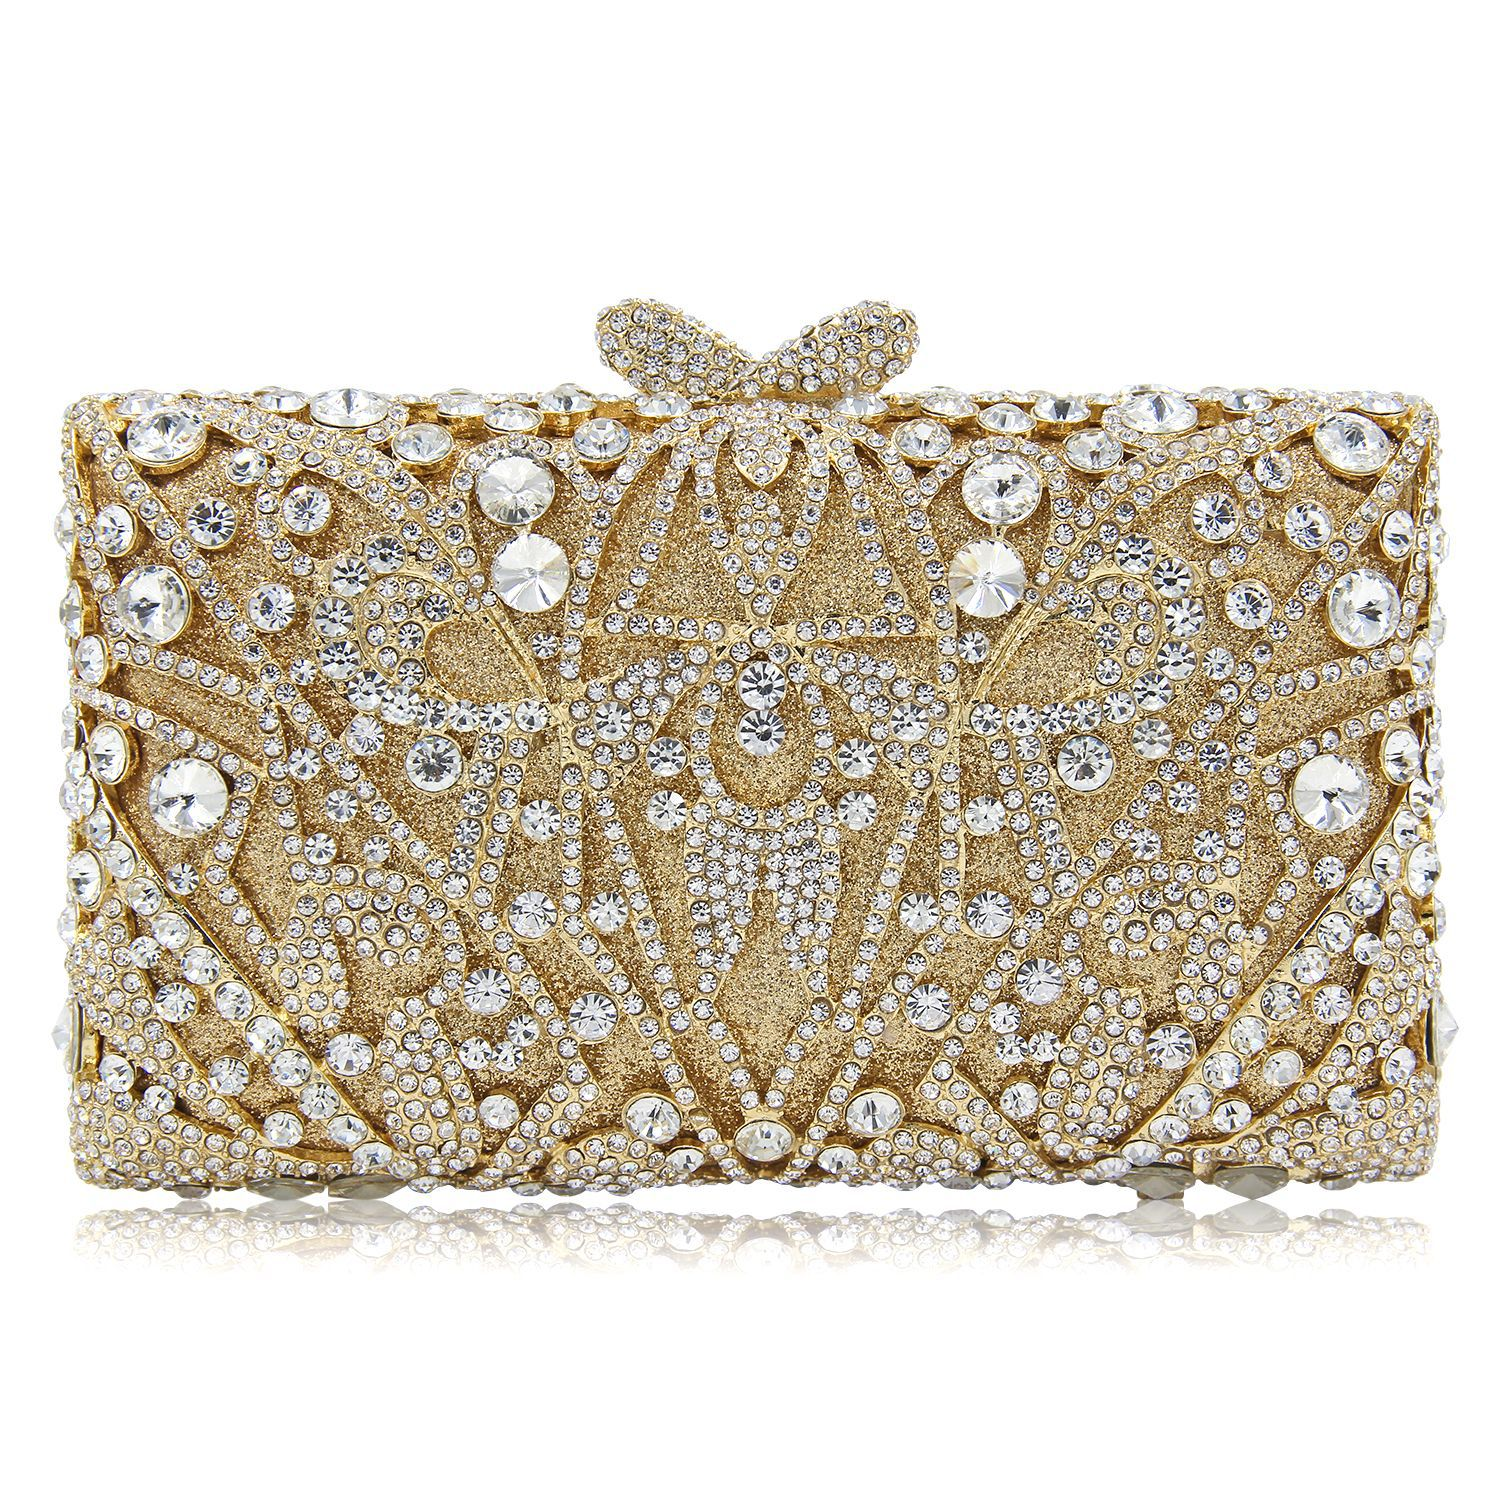 New Luxury Women Evening Bags Full Diamond Crystal Party Clutch Bag Chain Wedding Gold Clutches Purses colourful bird women evening luxury bags crystal clutches laides evening bag female party hard case bags wedding clutch purses